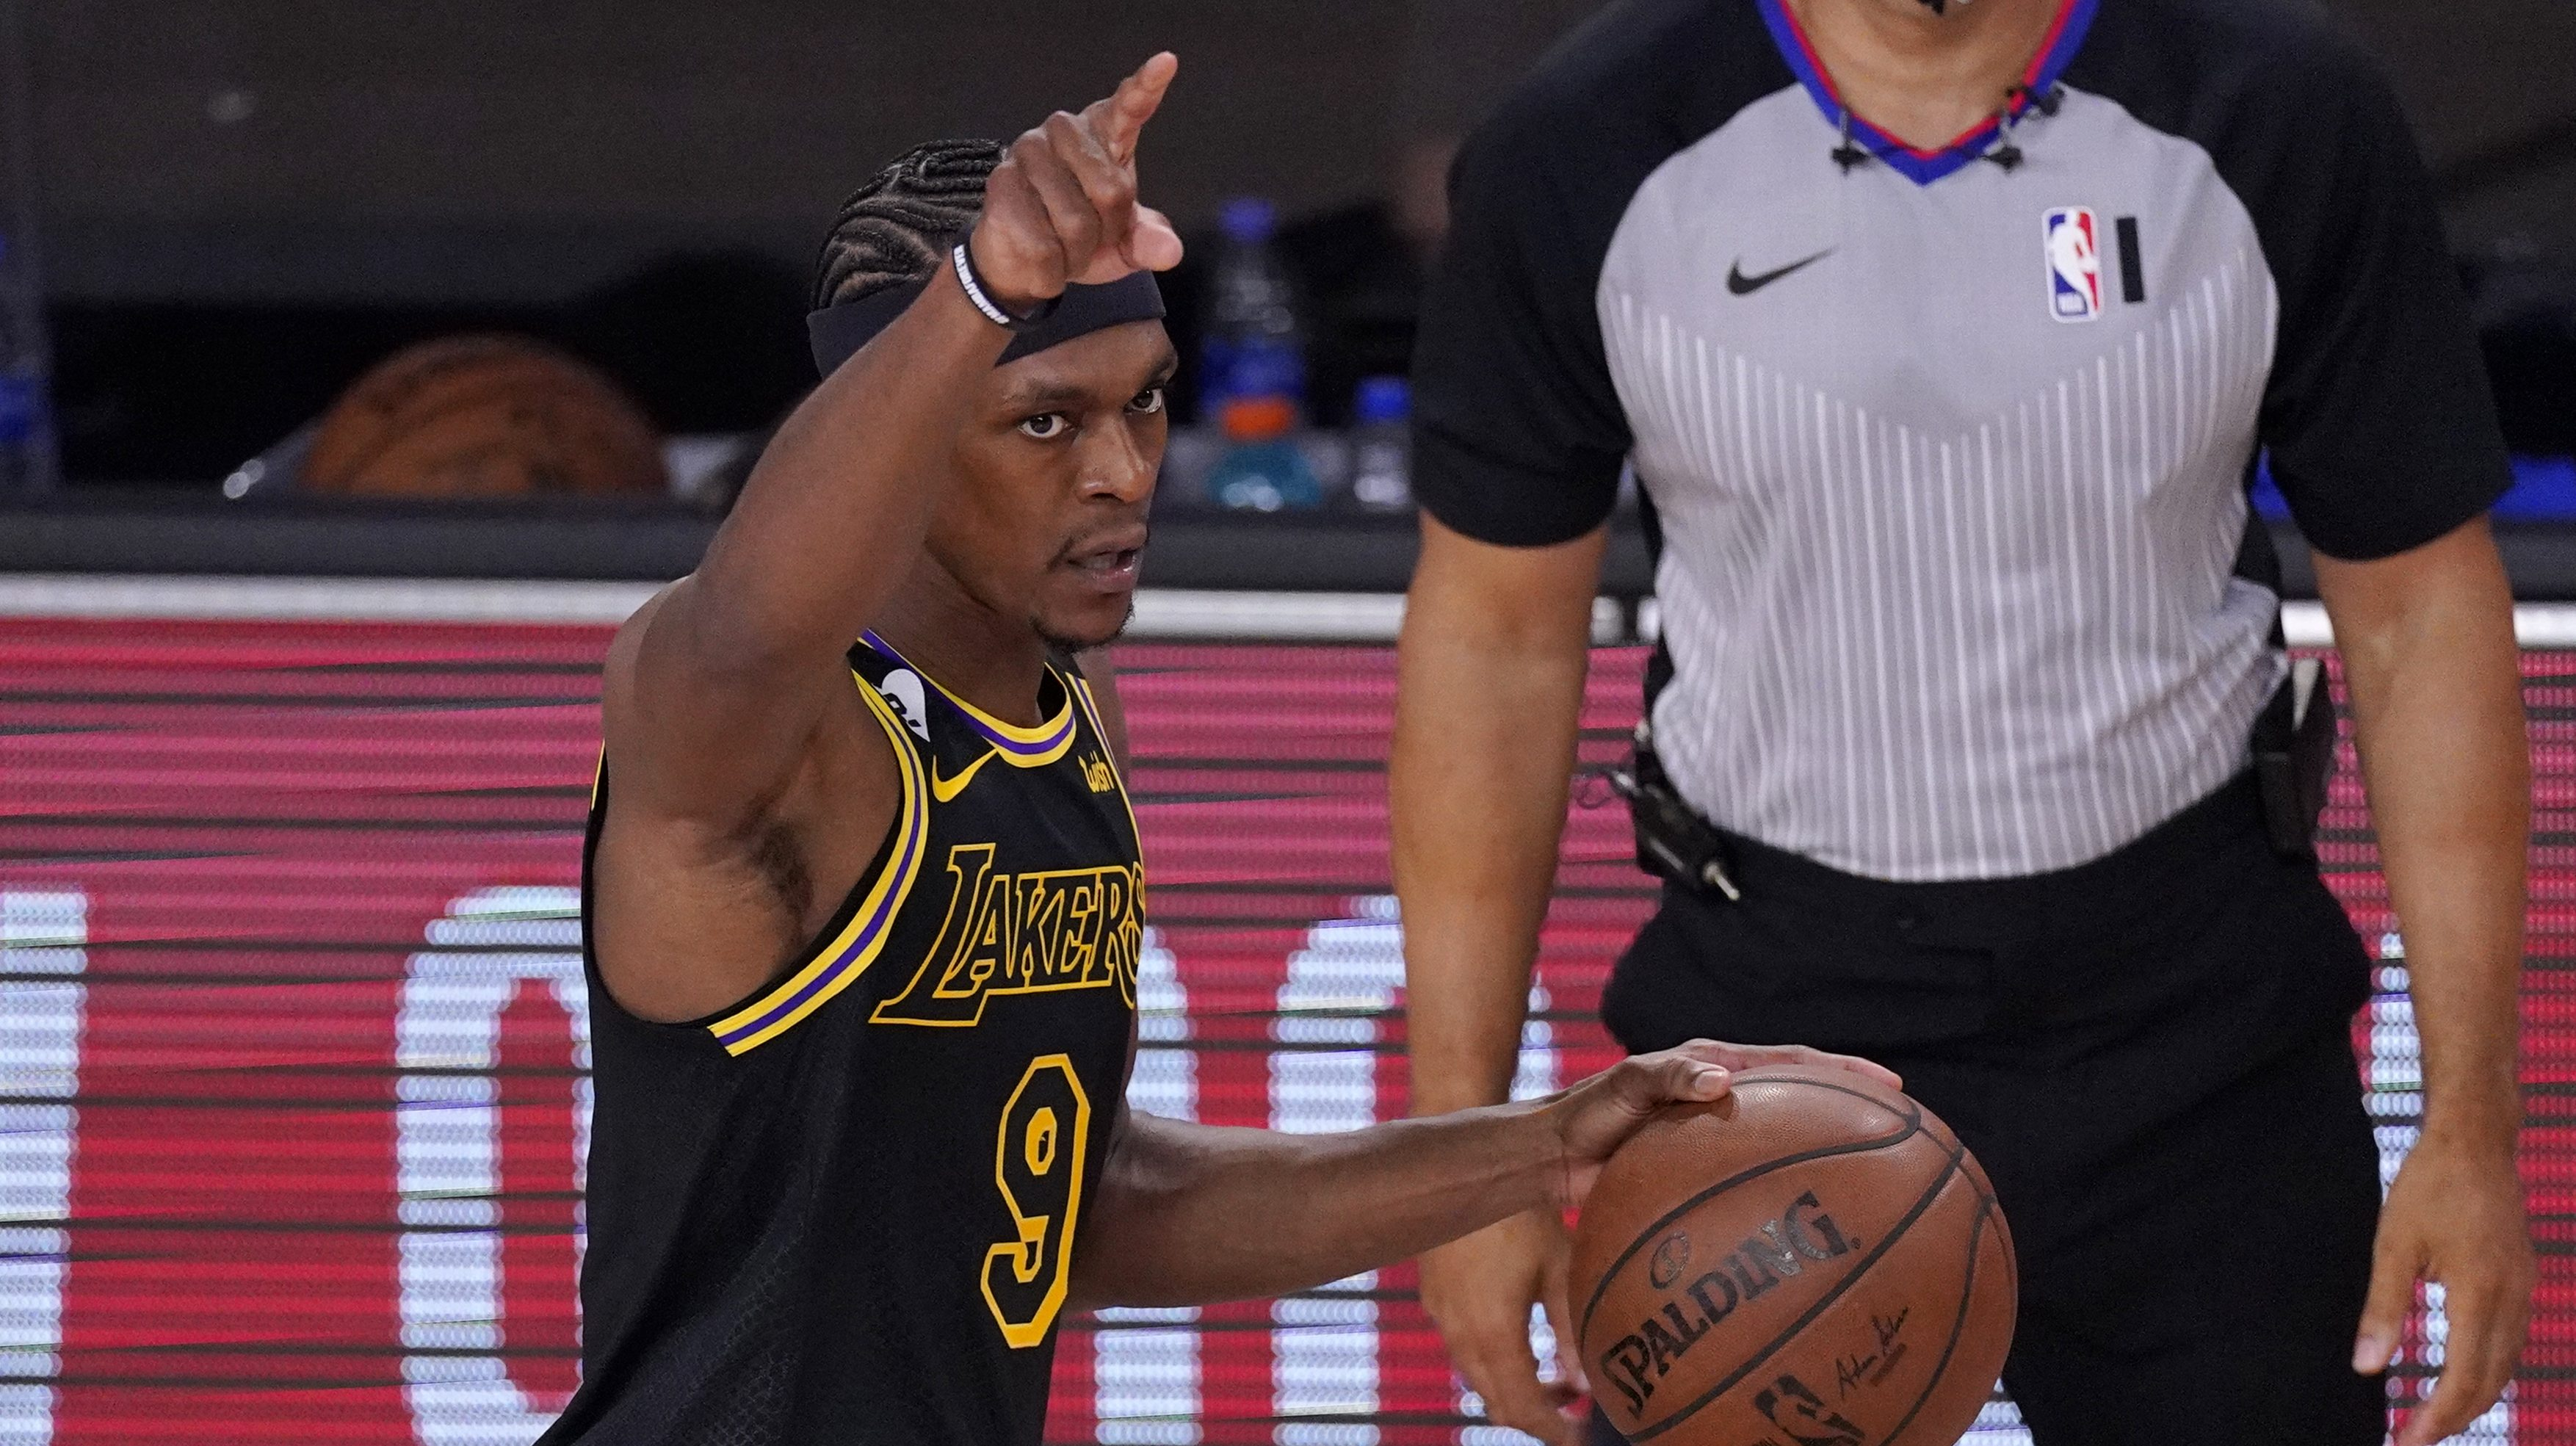 Rajon Rondo Gets Boost From His Brother Inside NBA Bubble